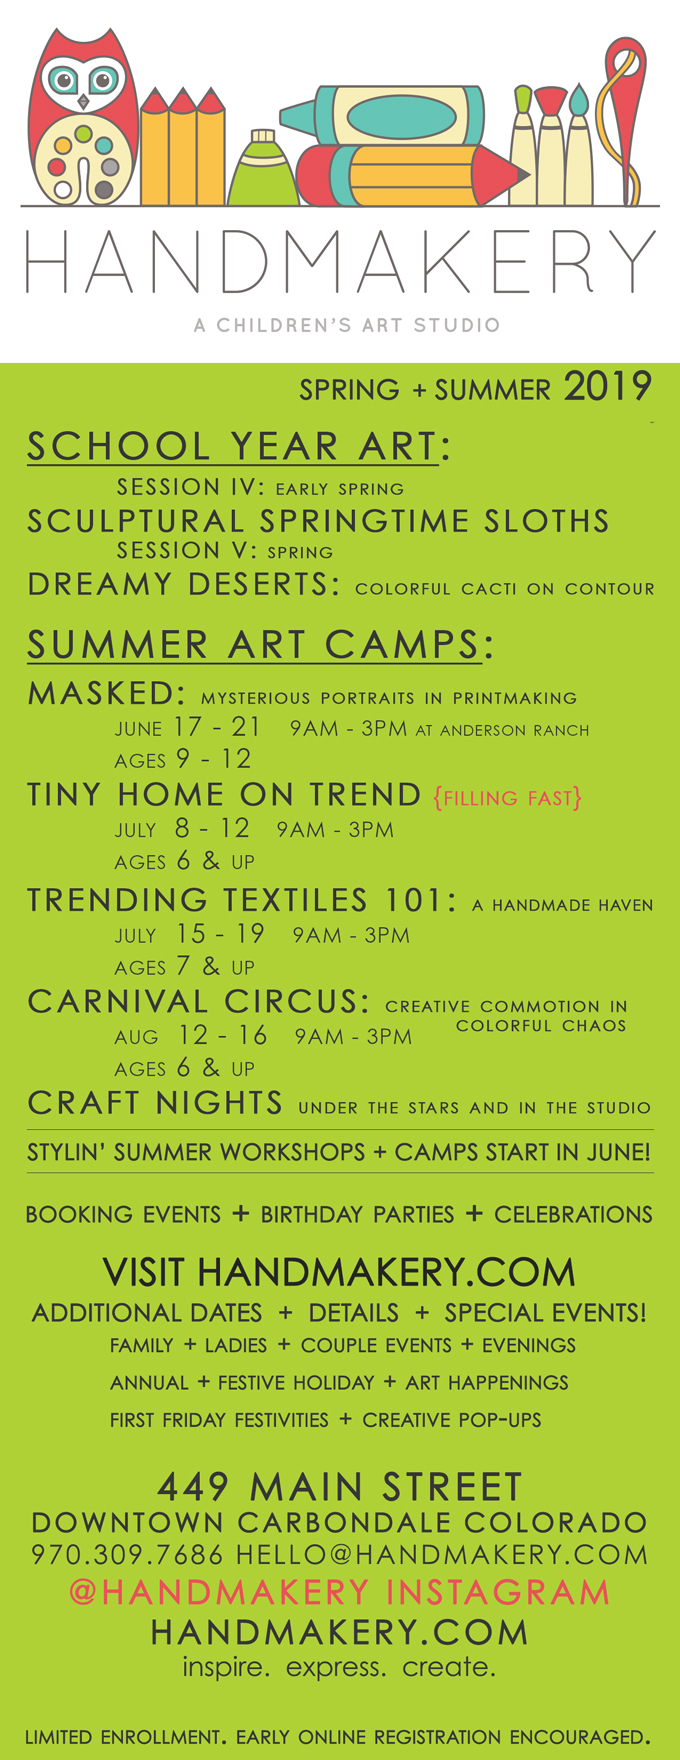 HANDMAKERY WORKSHOP BROCHURE SPRING + SUMMER 2019!